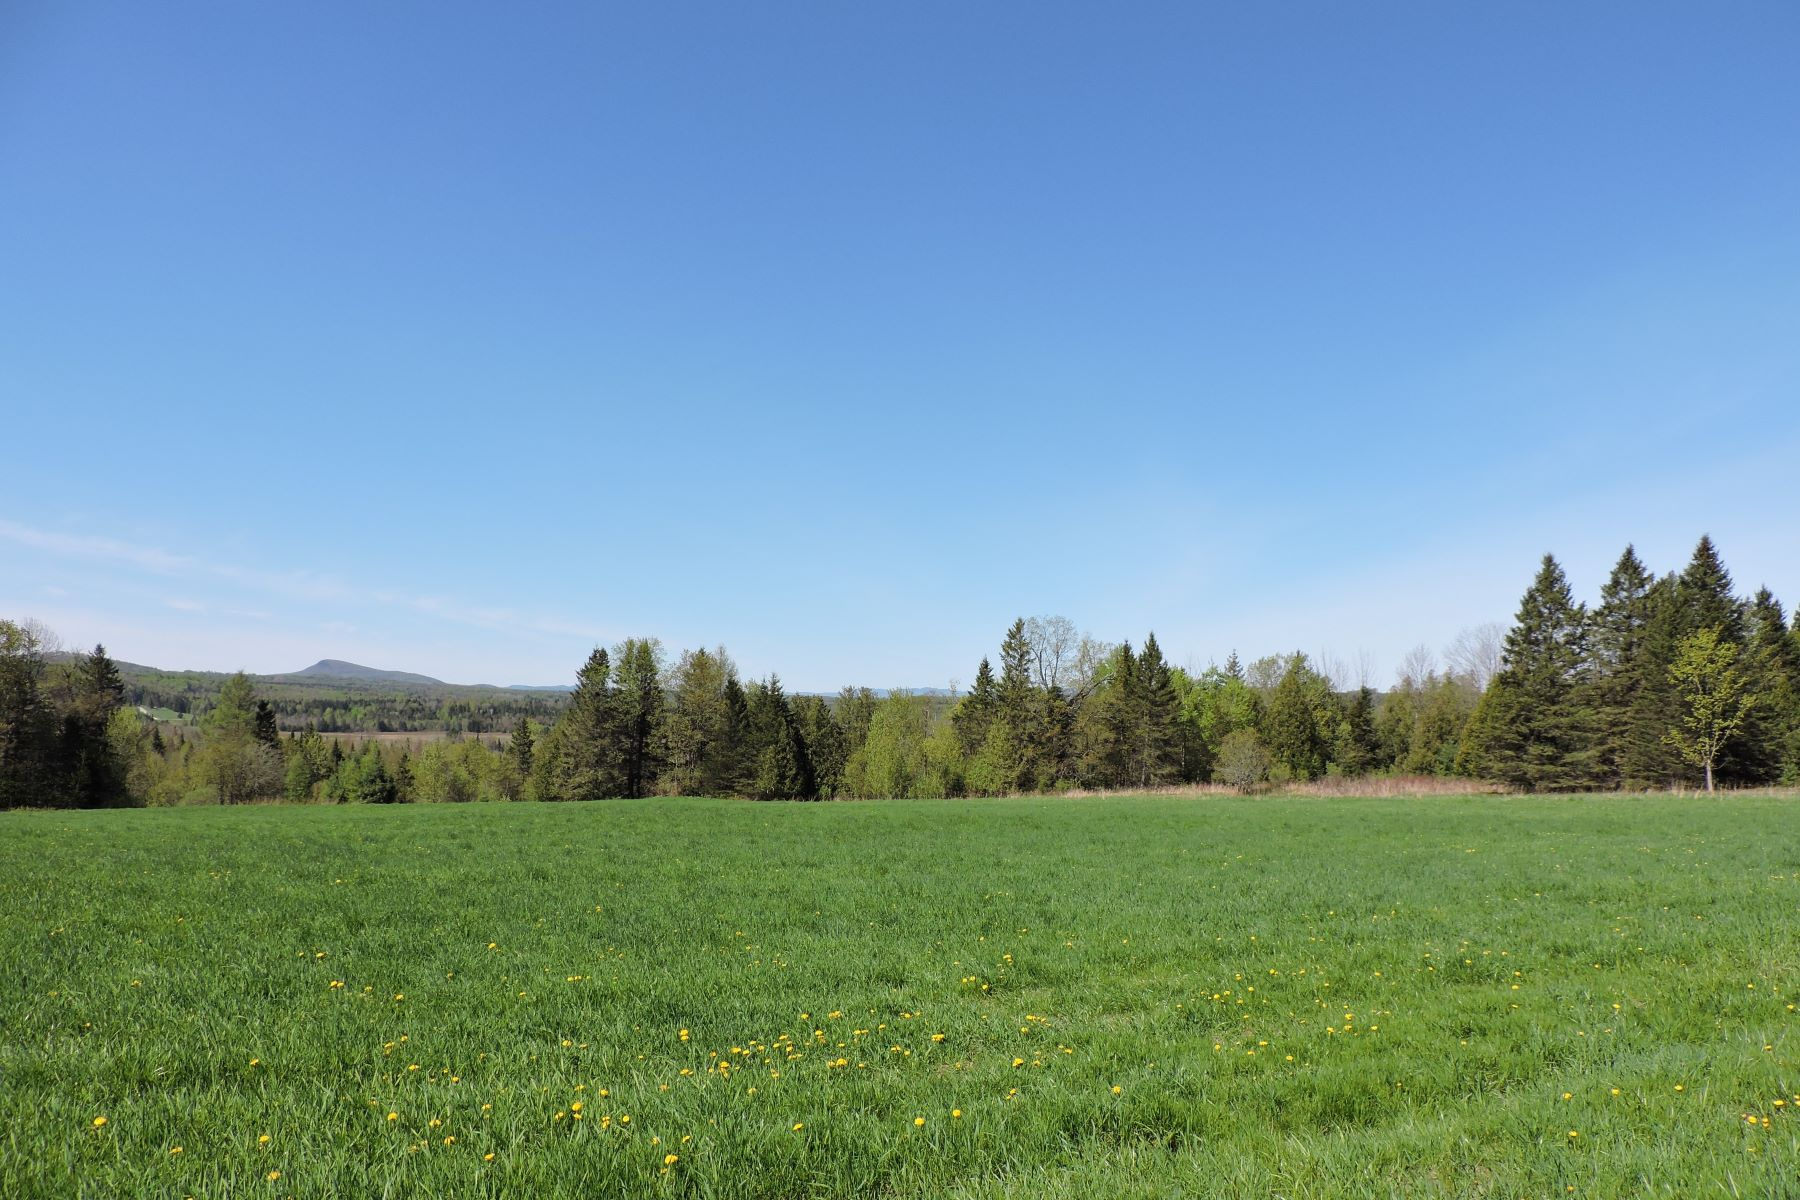 Land for Sale at 4862 Vt Route 105 Route, Charleston 4862 Vt Route 105 Route Charleston, Vermont 05885 United States